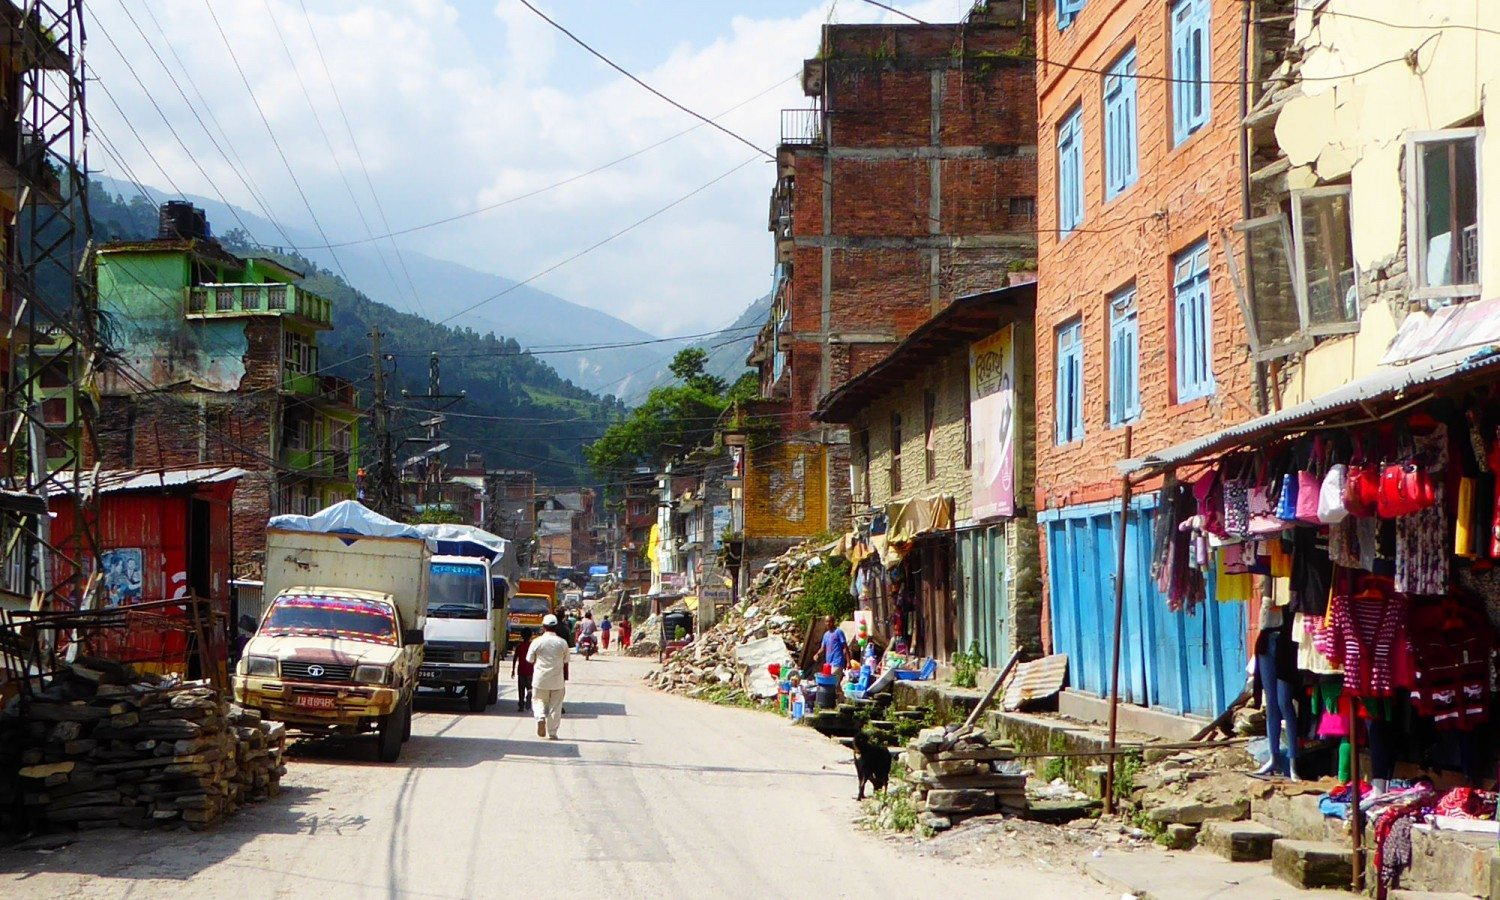 The main road in Bahrabise, Sindhupalchowk, four months after the earthquake. Piles of rubble and building materials line the road.